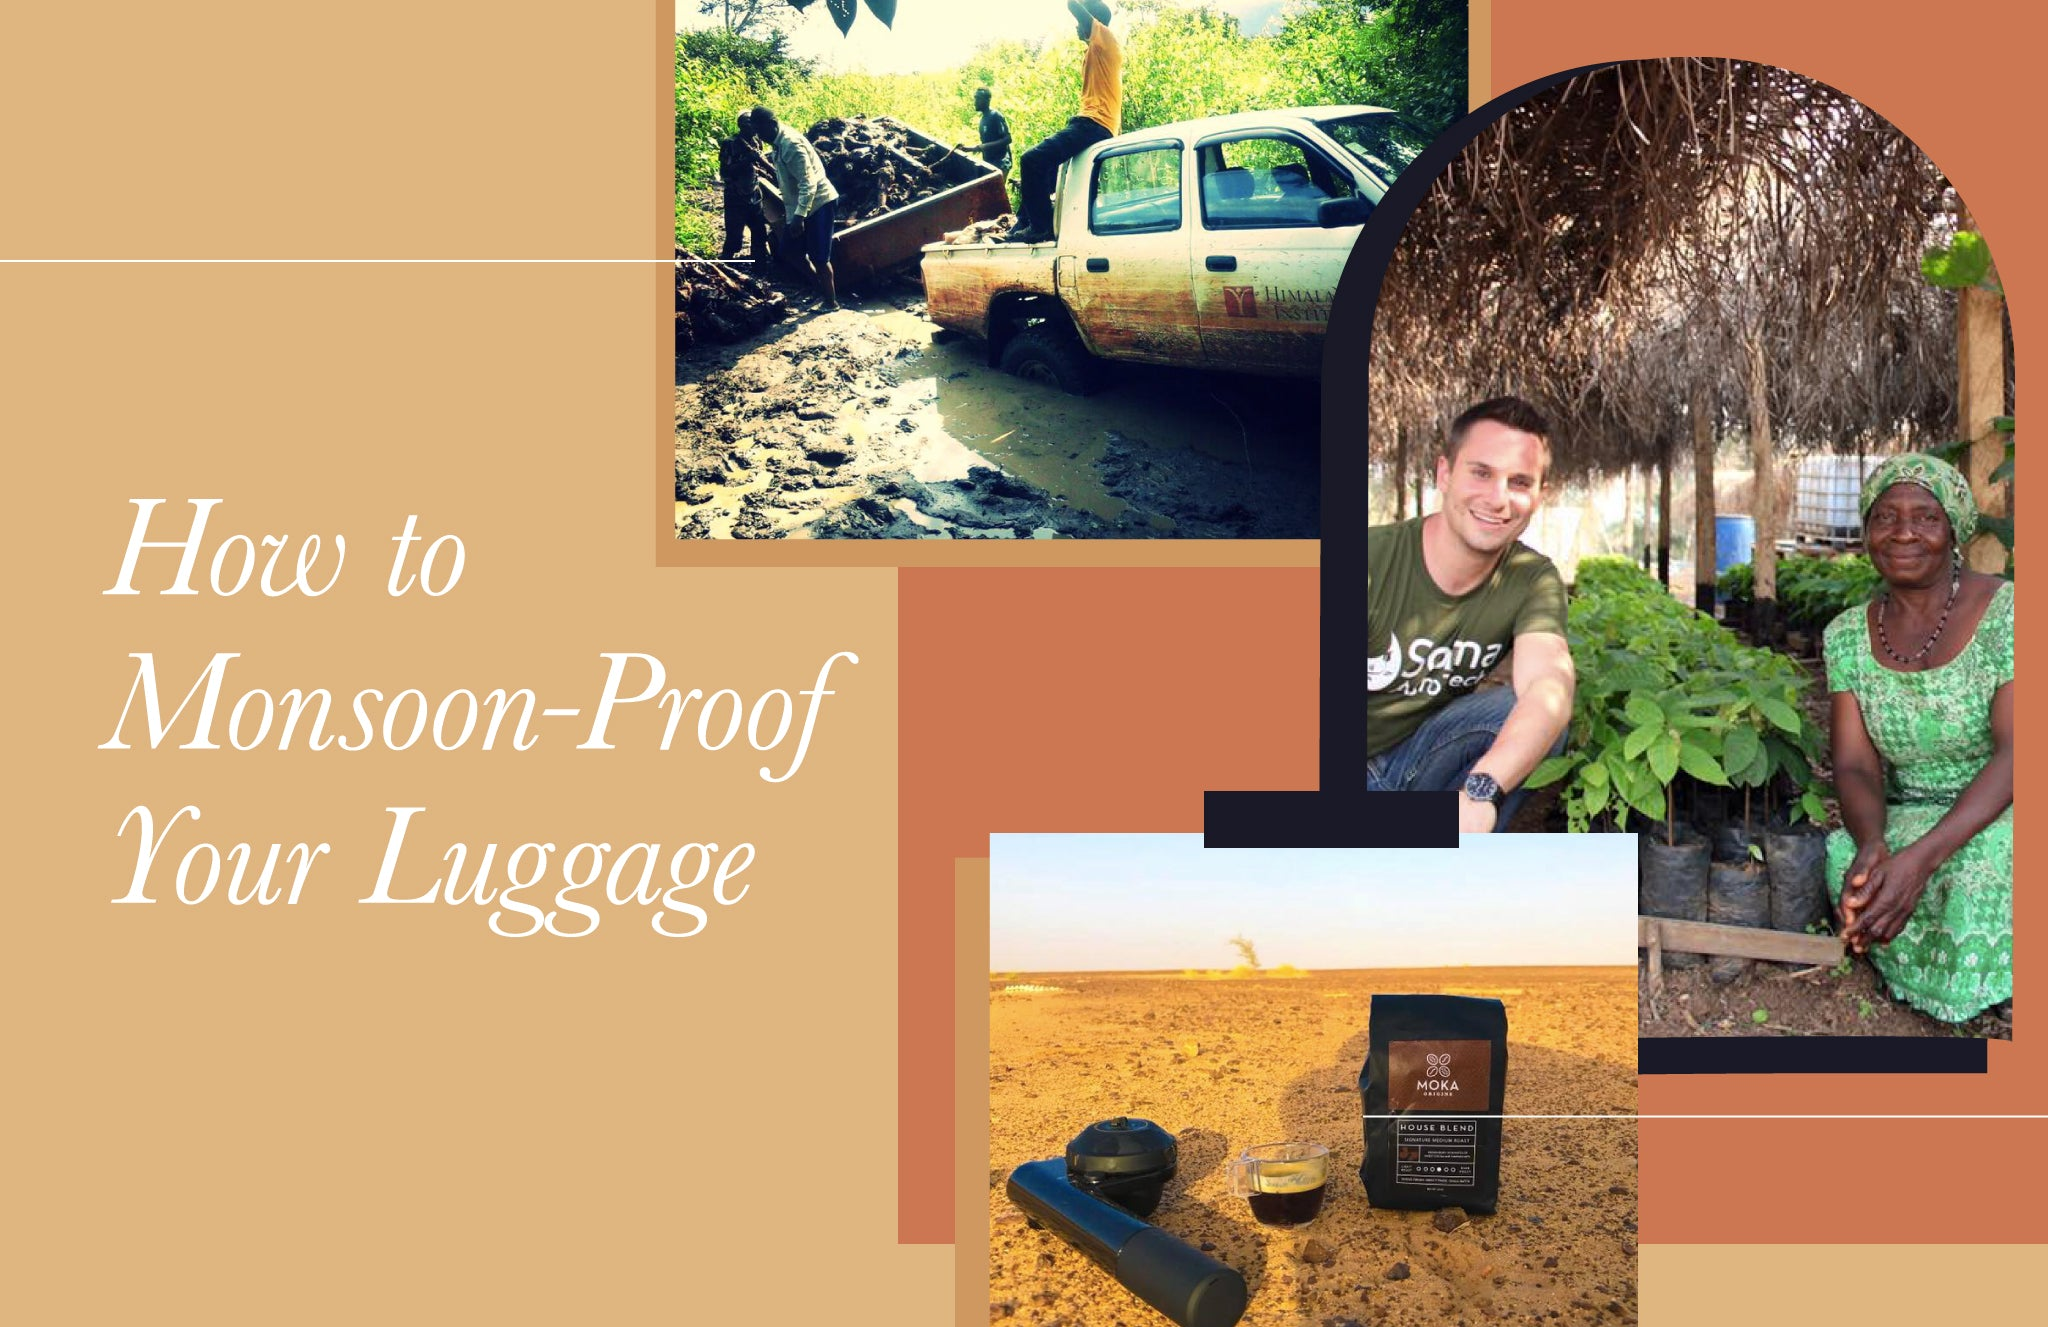 How to Monsoon-Proof Your Luggage